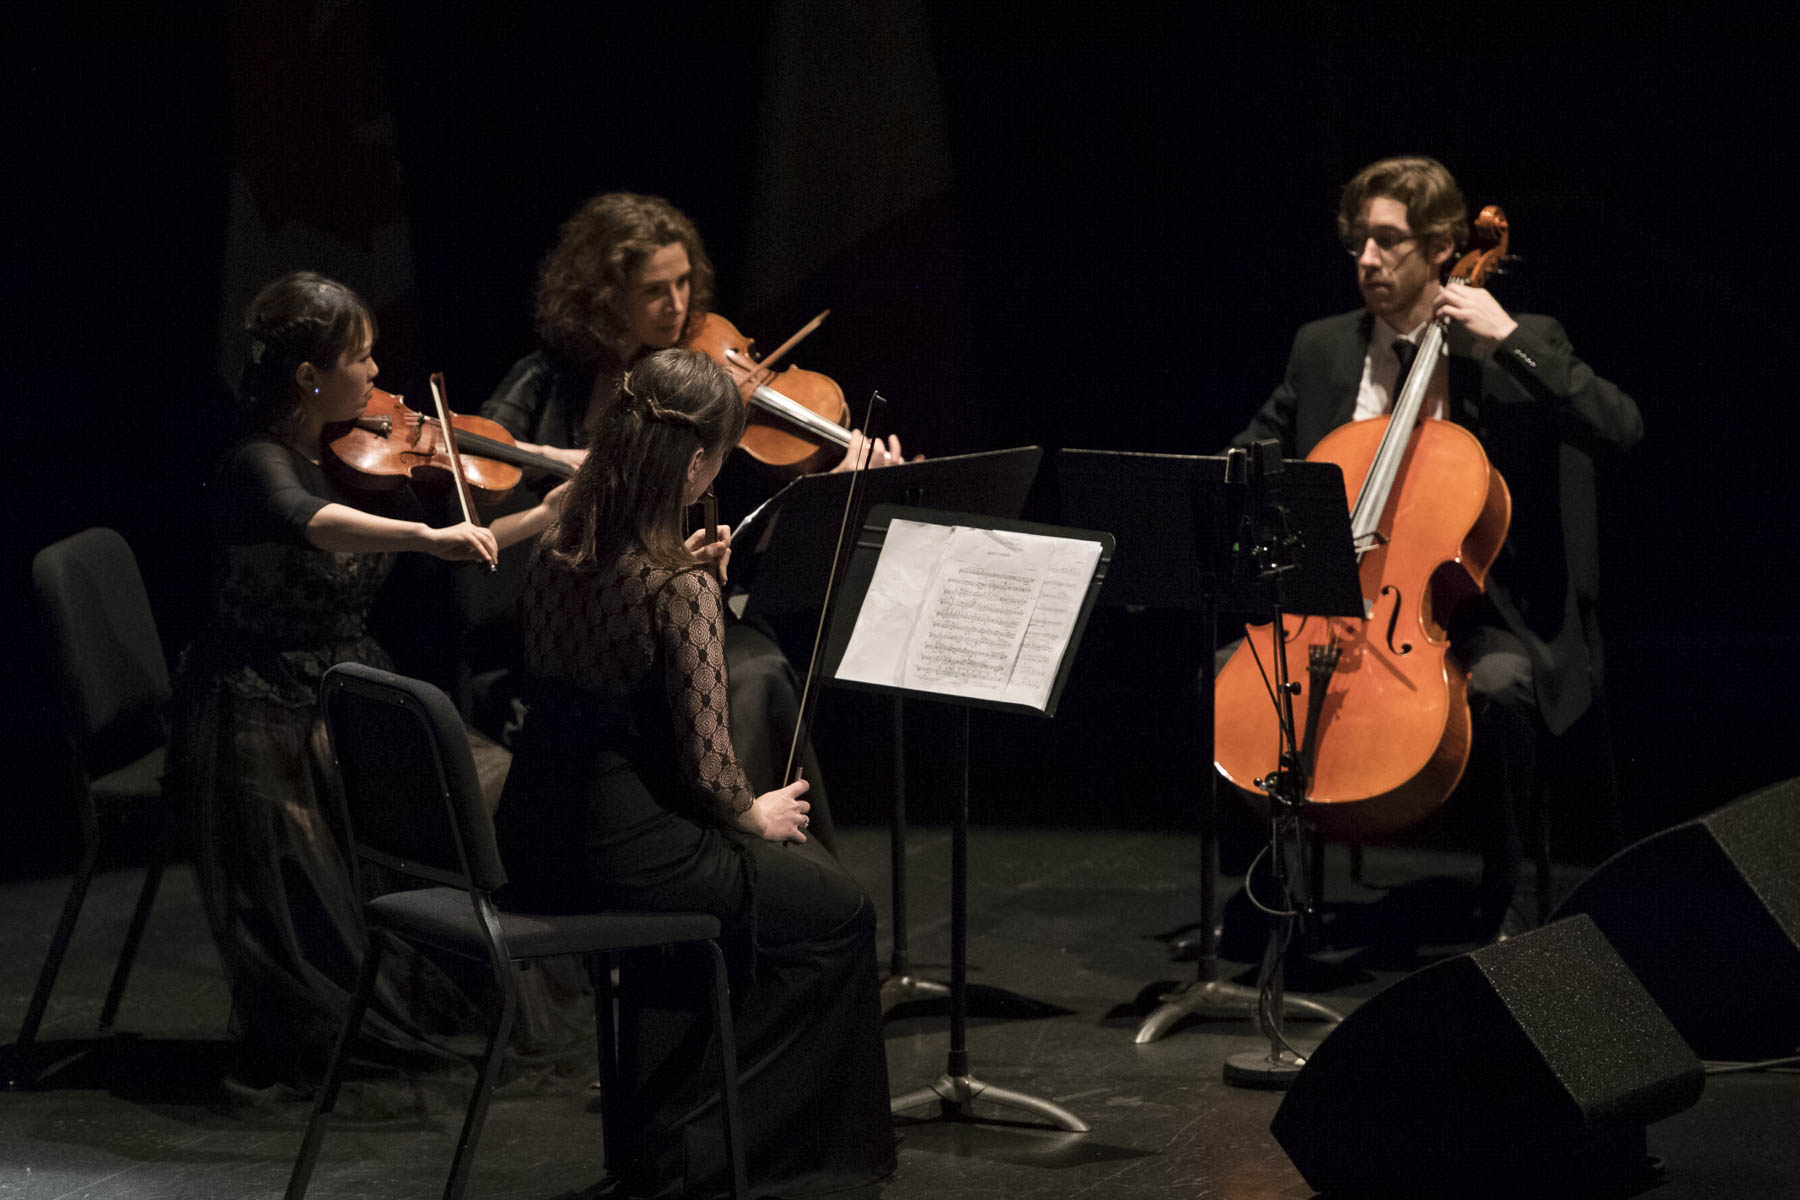 A variety of musicians performed during the concert, including a string ensemble.